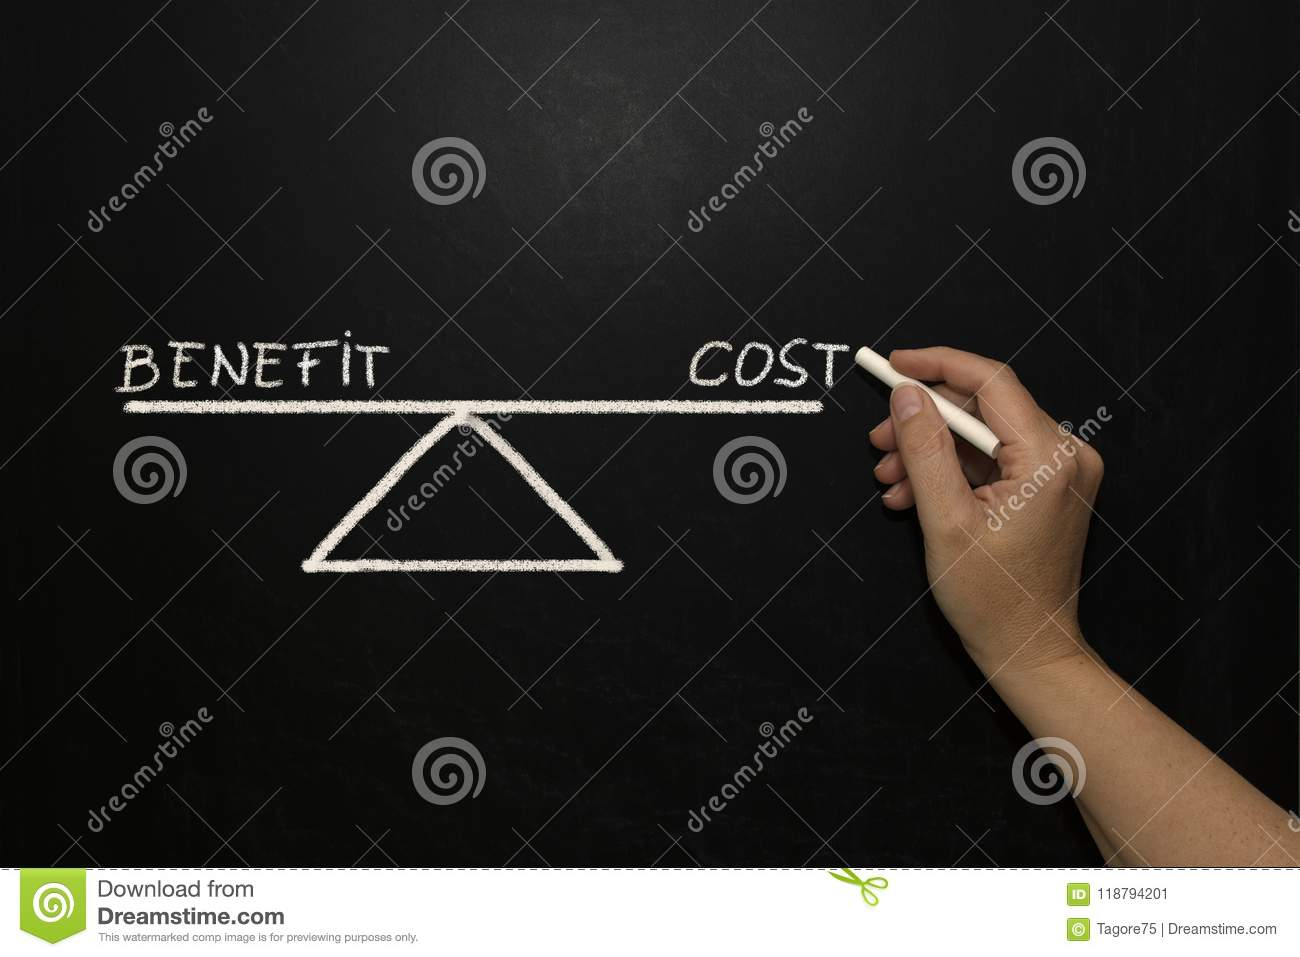 Benefit And Cost Stock Image Image Of Illustration 118794201